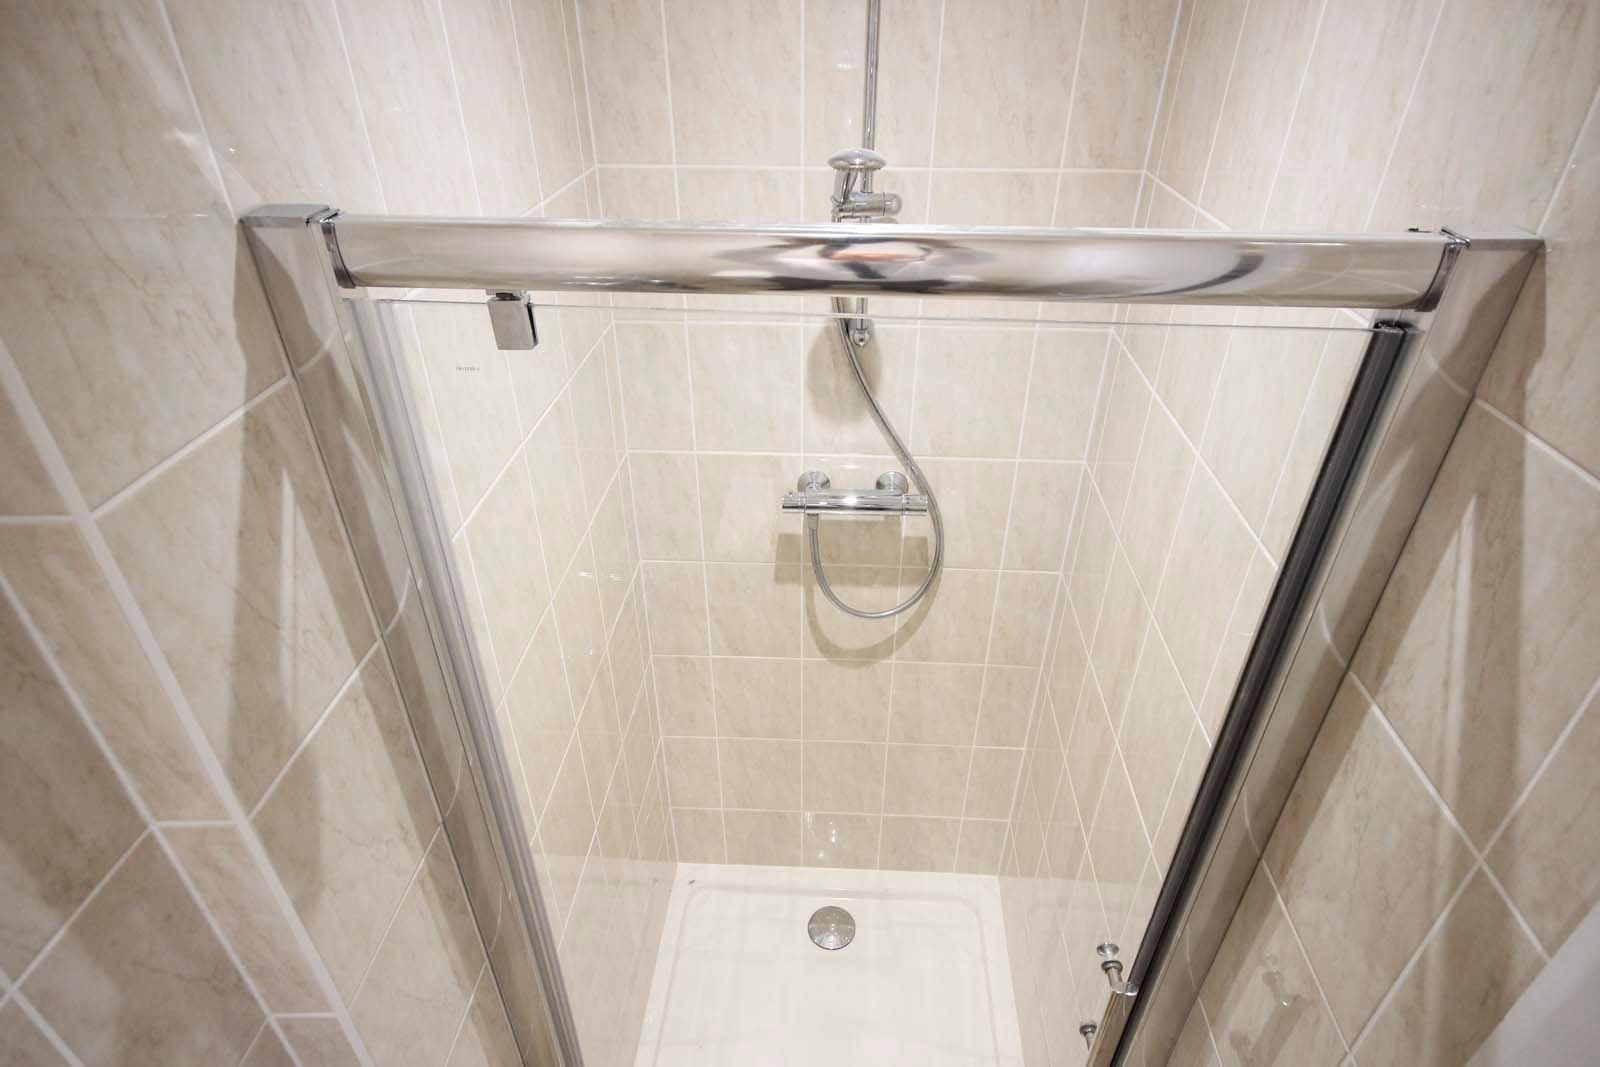 1 bed Apartment to rent in Littlehampton - Shower (Property Image 5)